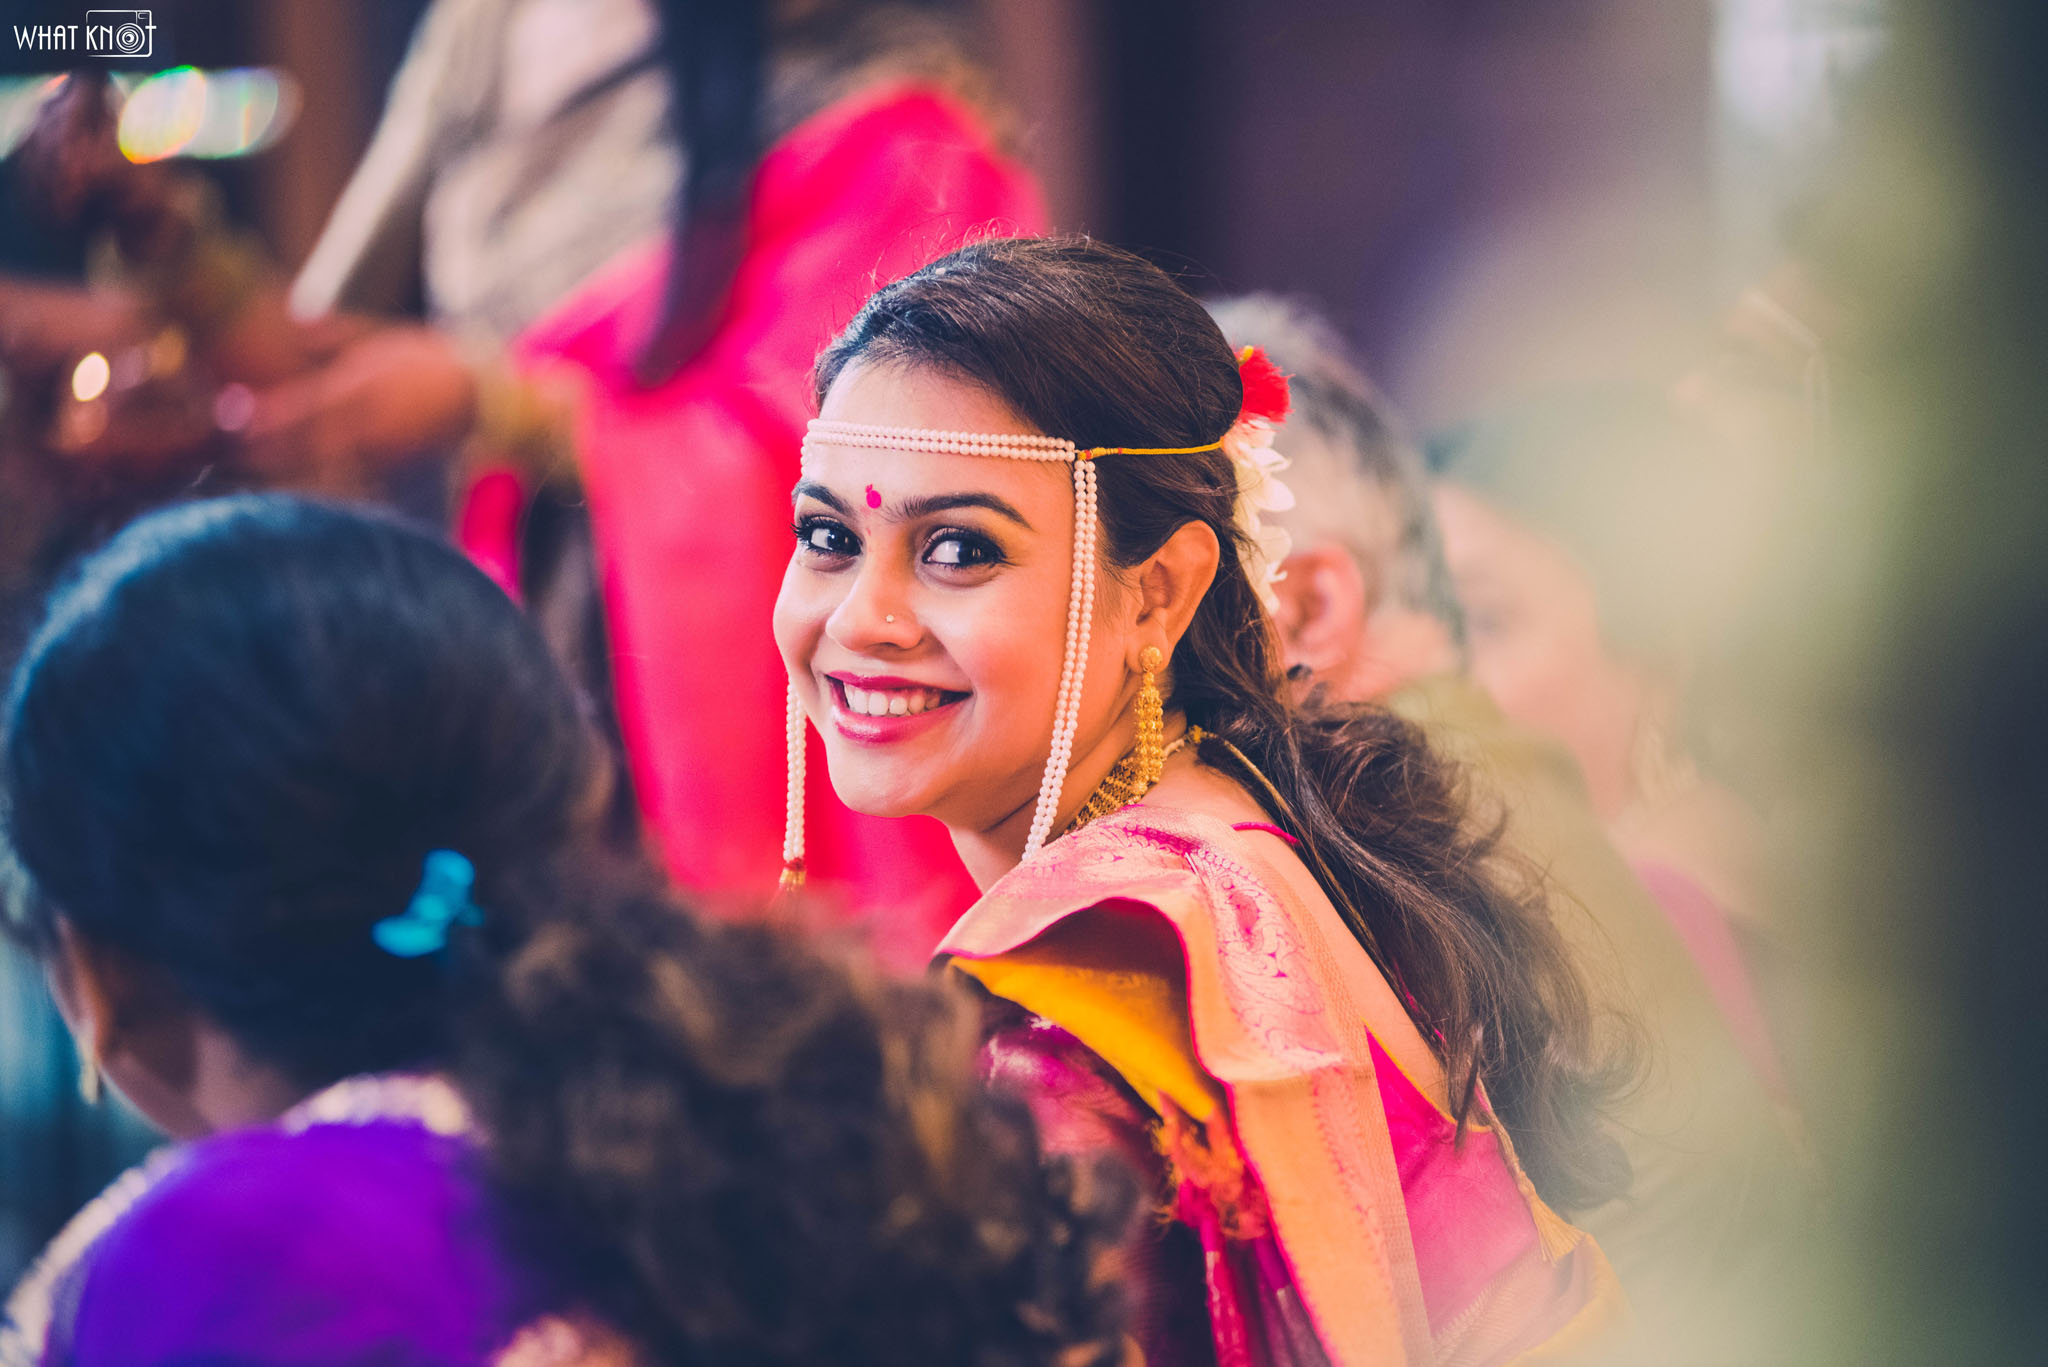 Candid-Wedding-Photography-WhatKnot-Marathi-96